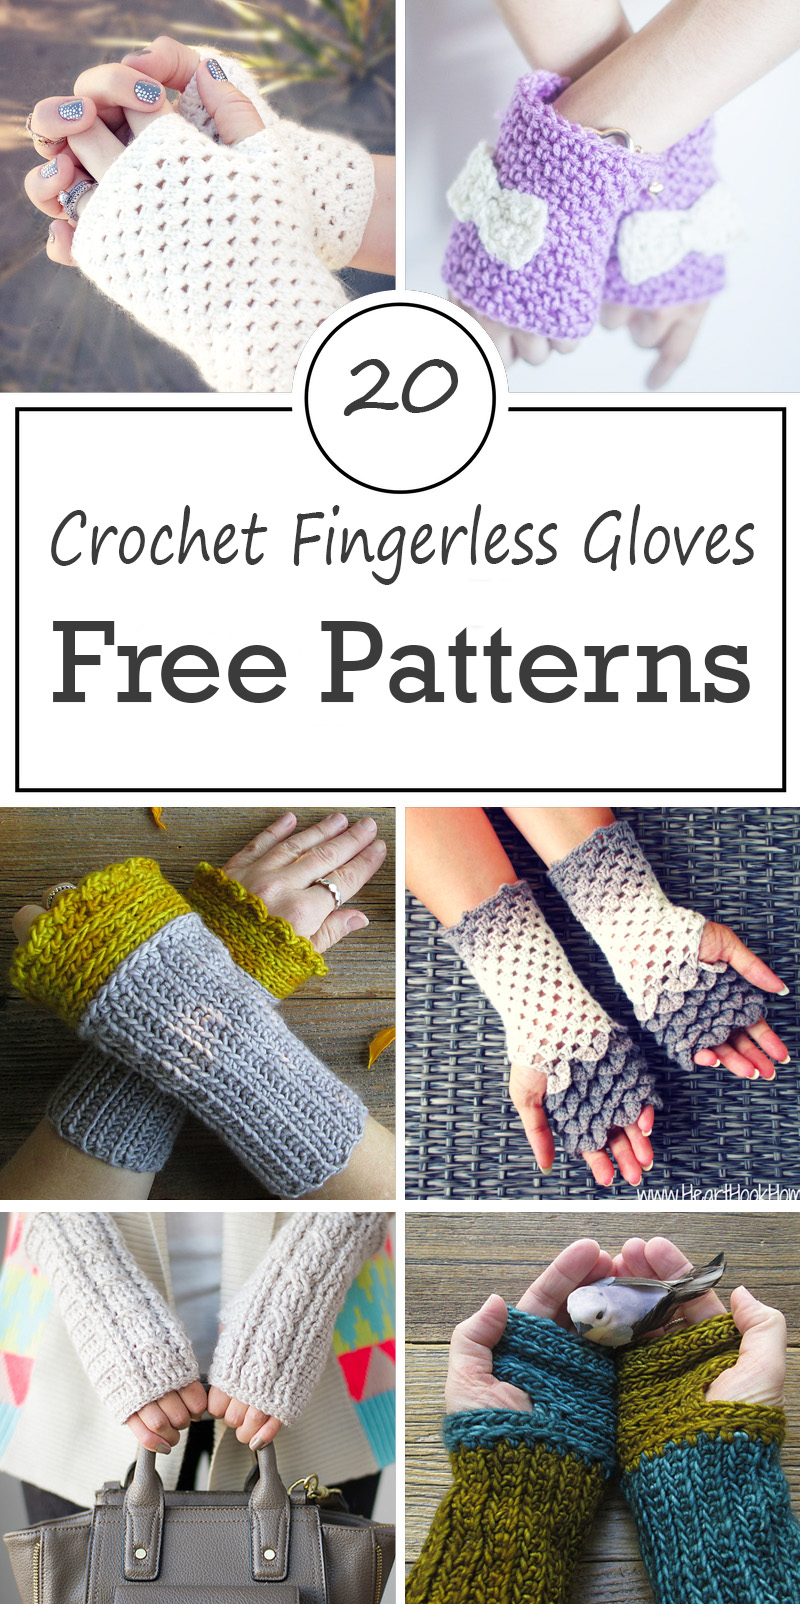 Crochet Fingerless Gloves Free Patterns – Crafty Tutorials